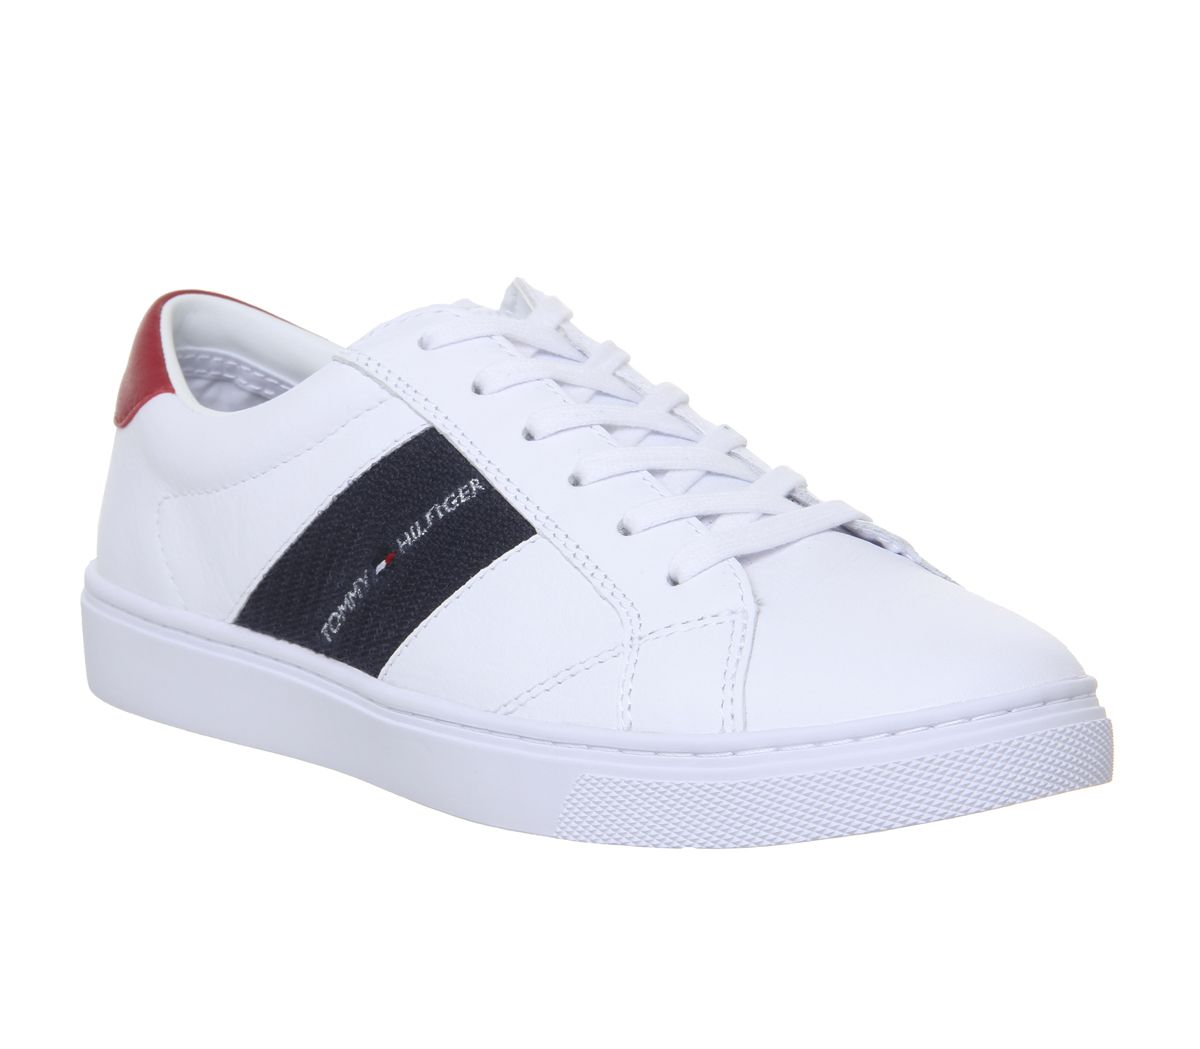 1bbae0050bf8 Tommy Hilfiger Badge Sneakers White - Hers trainers